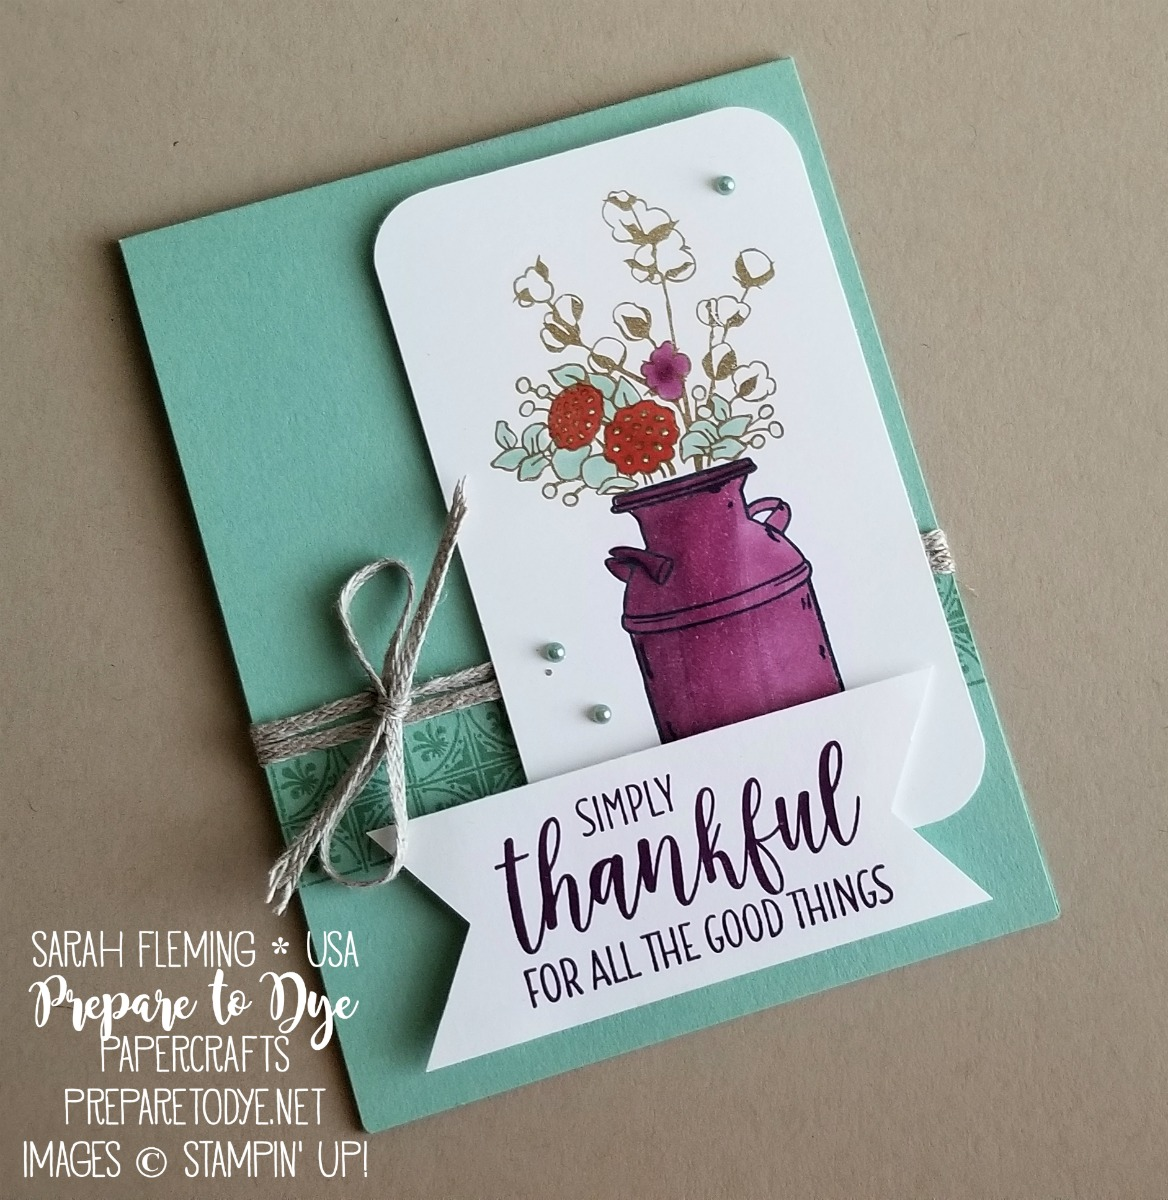 Stampin' Up! handmade thank you gratitude card using Country Home stamps and Stampin' Blends alcohol markers - Sarah Fleming - Prepare to Dye Papercrafts